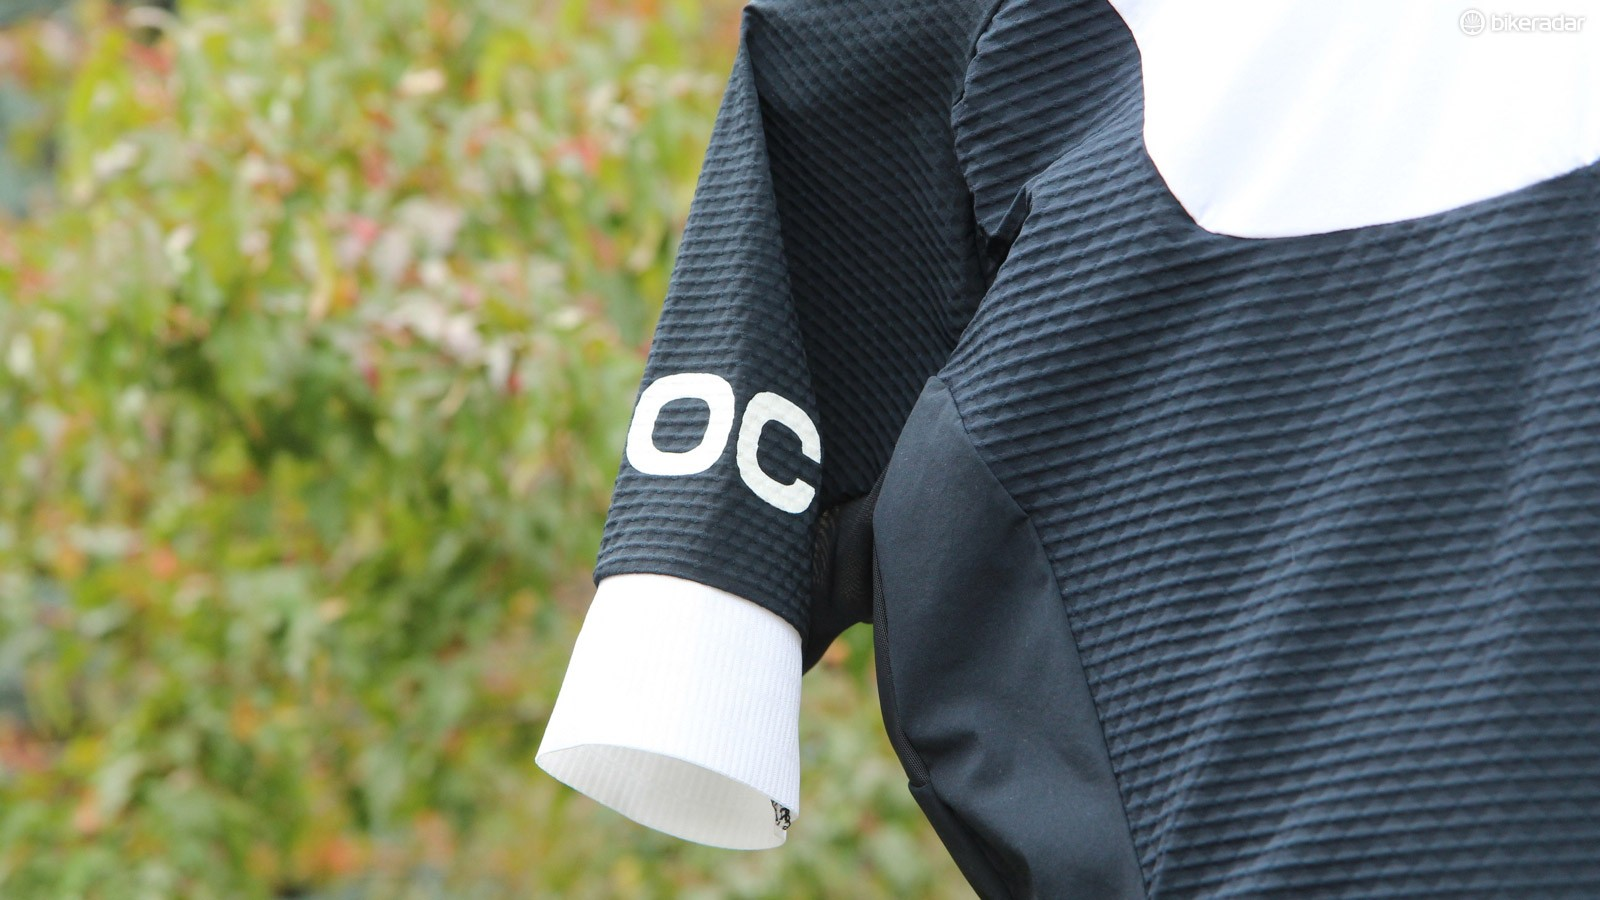 POC took a number of fabrics into the Volvo wind tunnel, and settled on this textured option strictly for its aero benefit